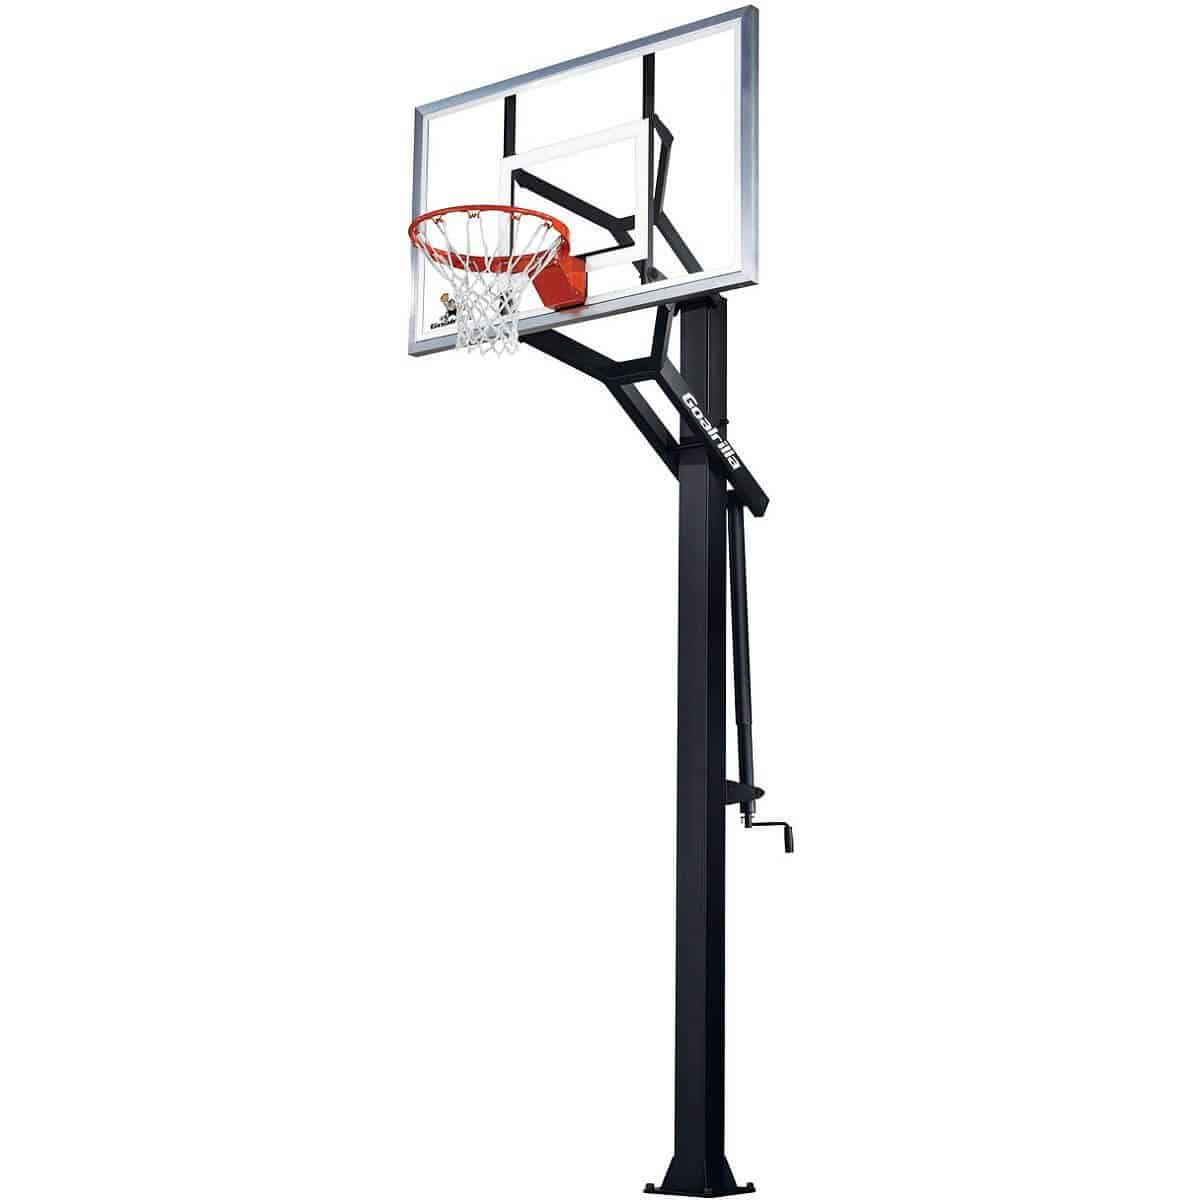 Best Adjustable Basketball Hoop for Your Family